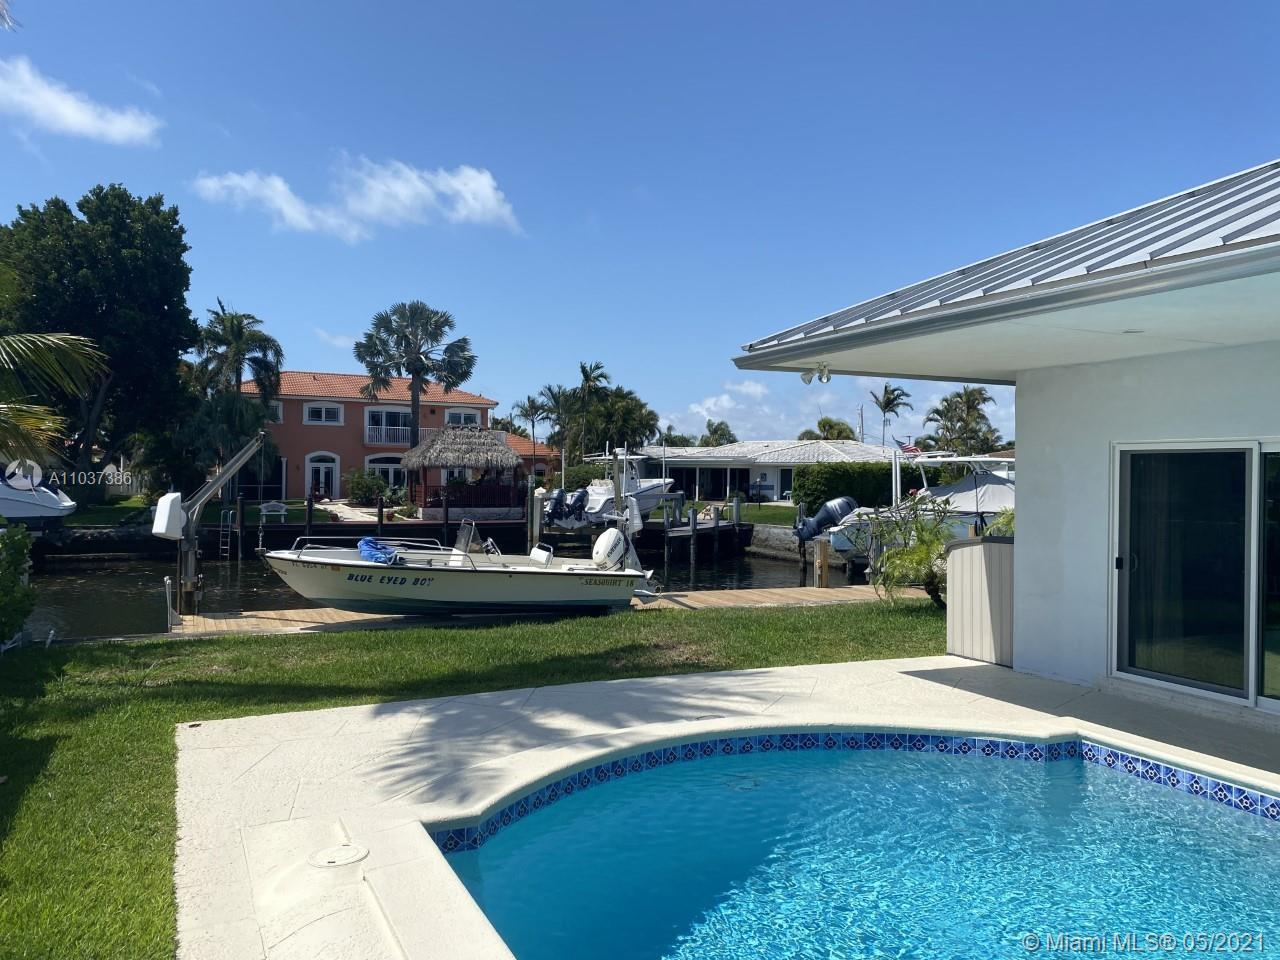 Imagine Paradise on the intracoastal. Just a mile from the Deerfield Beach seashore, a short walk to